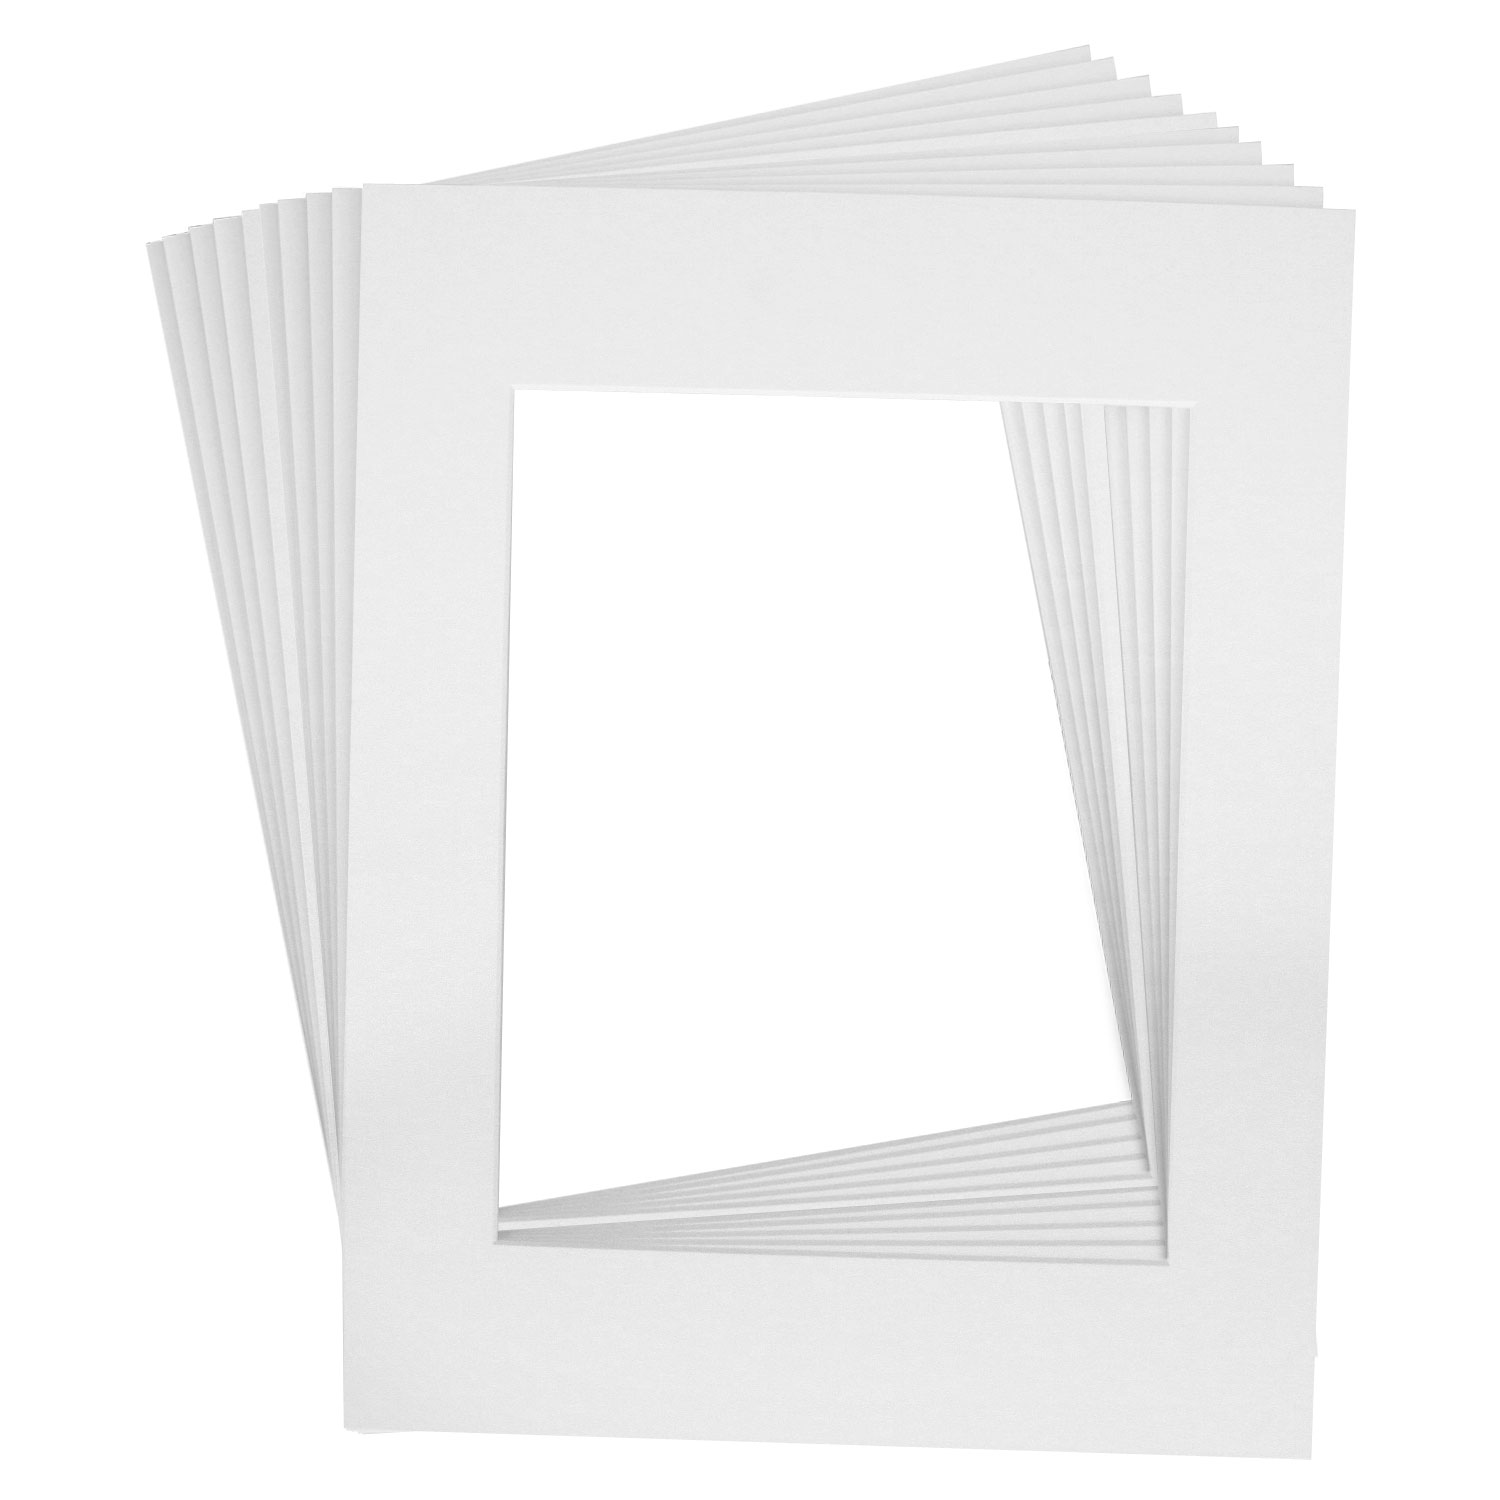 10 Art Mats Premier Quality Acid Free Pre Cut 11x14 White